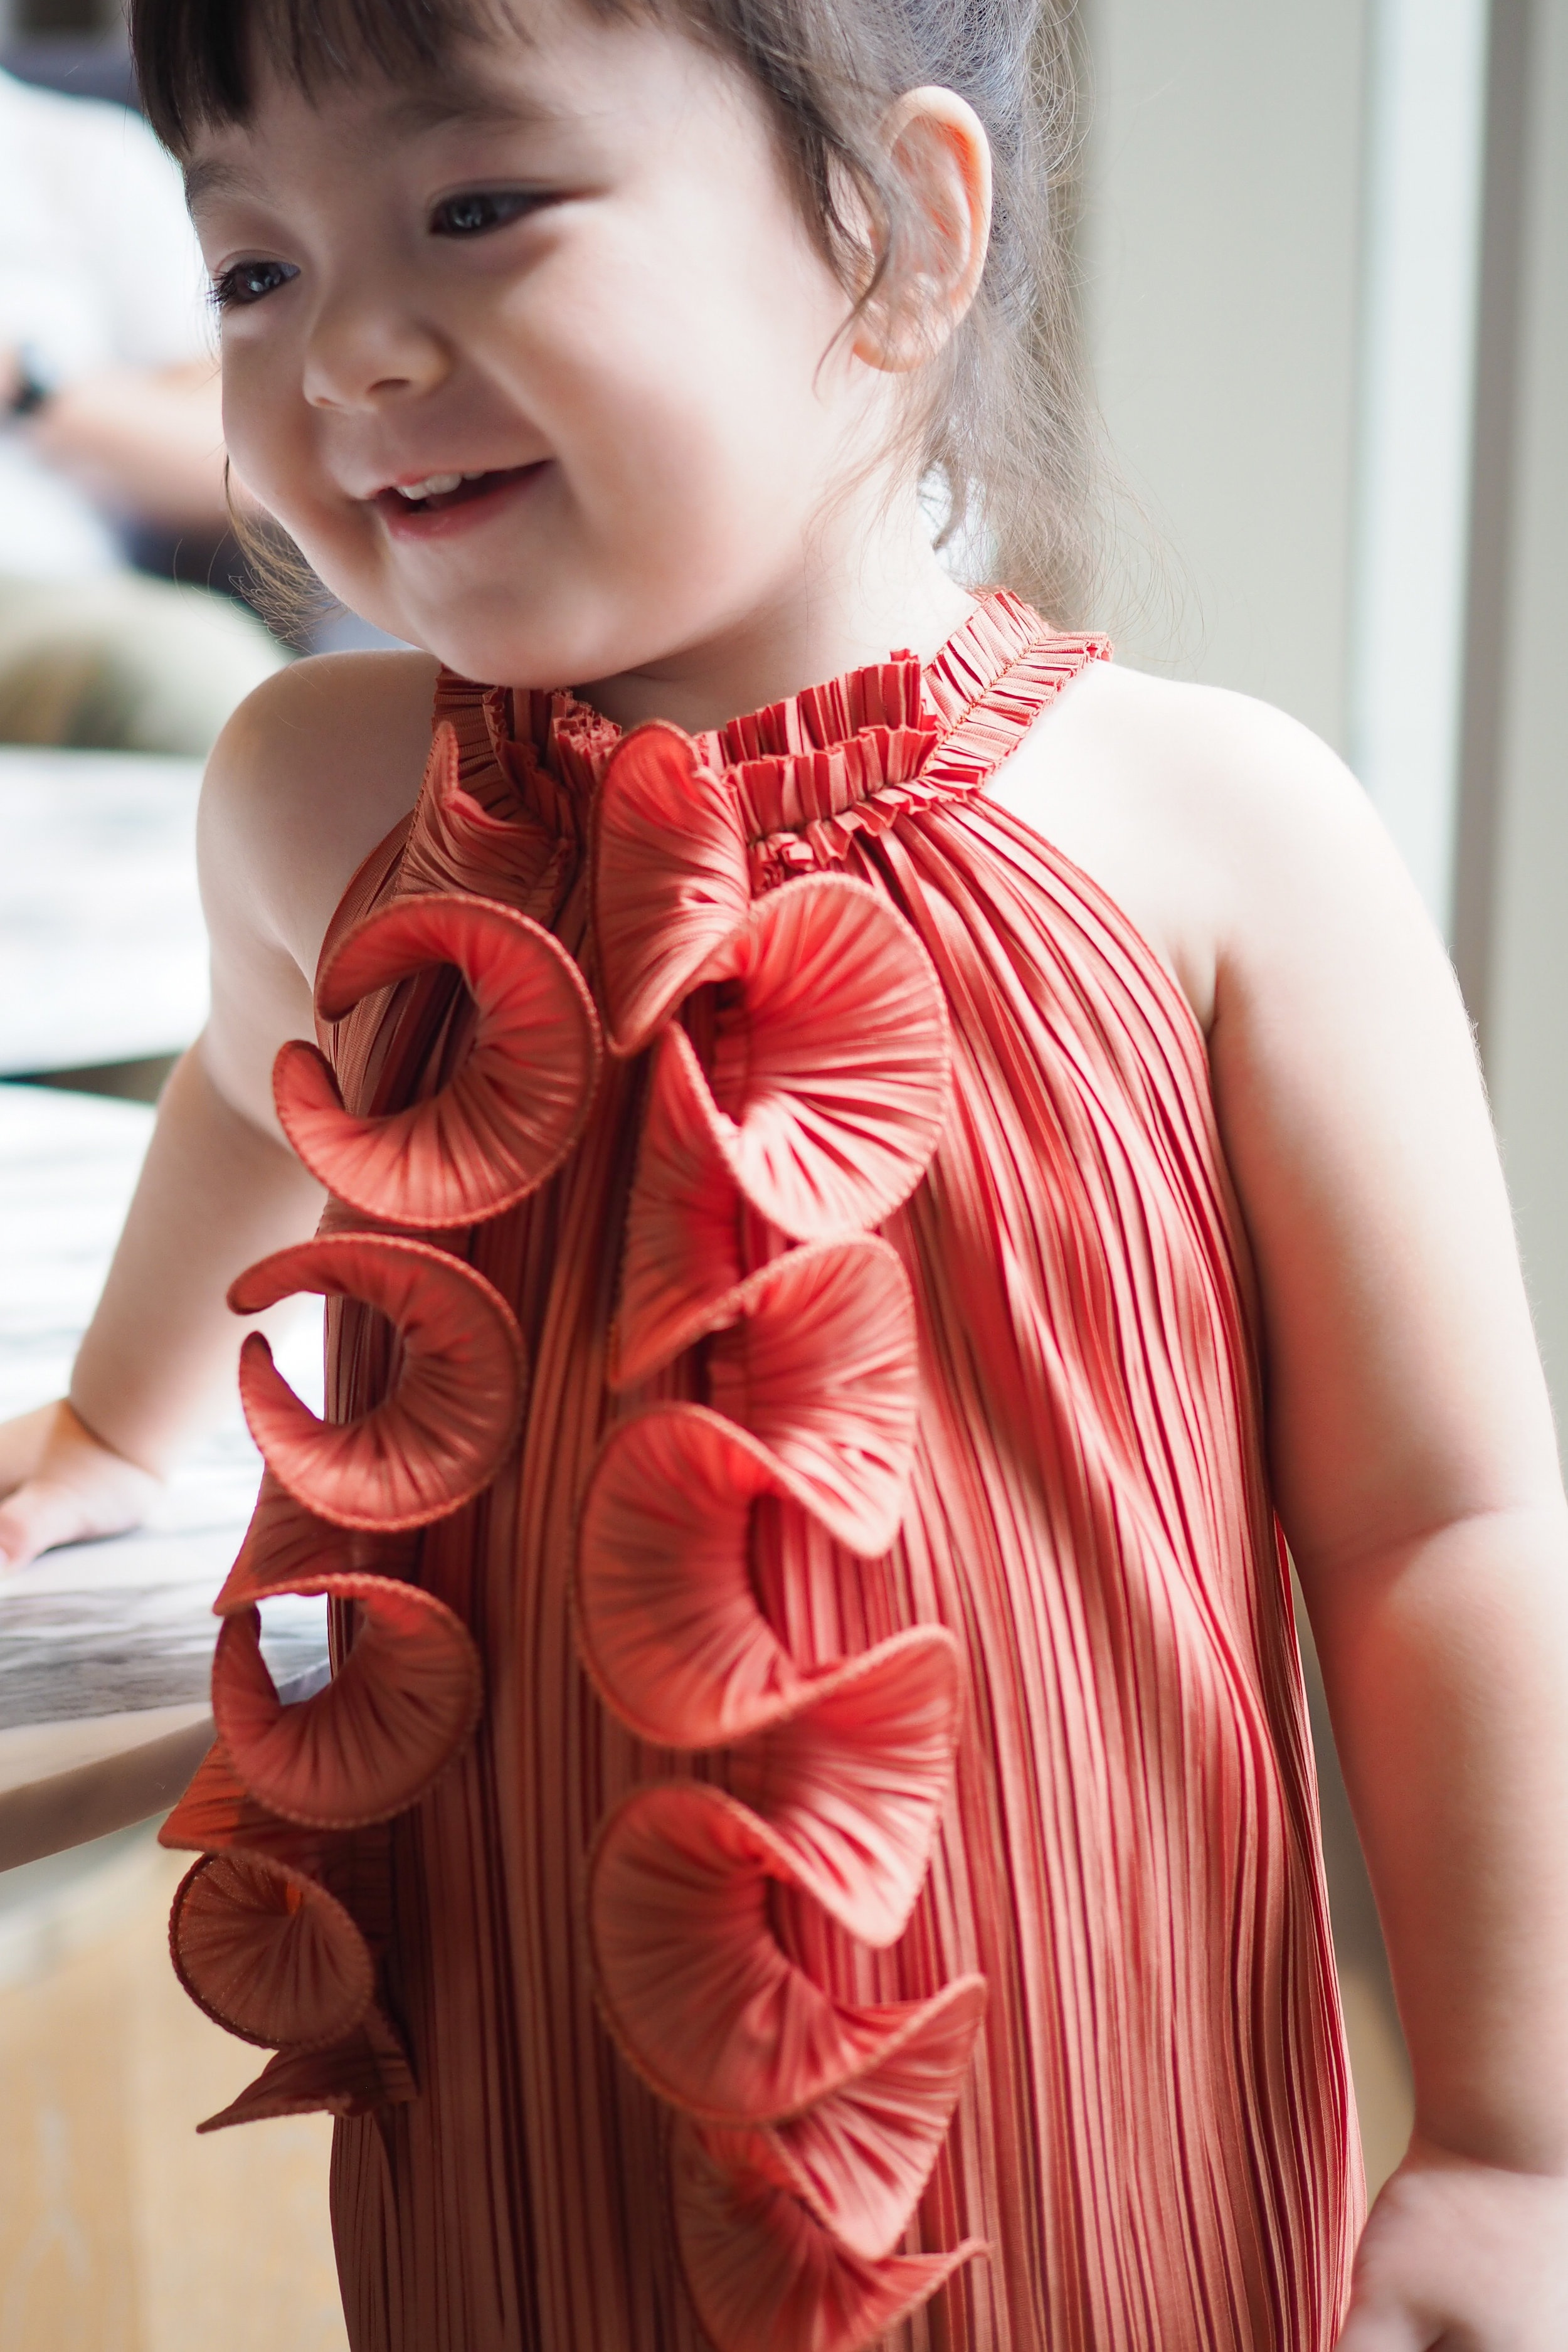 "#innitBabyPara - Get playful in this statement piece! Collar is fixed with elastic band, the stretchiness gives a relaxed fit and is fuss free for all our petite ones. Mamas can now slip on the #innitPARA dress and twin with their baby!#innitBabyPara comes in 3 sizes XS | bust 14"" length 11"", for 80cm S 